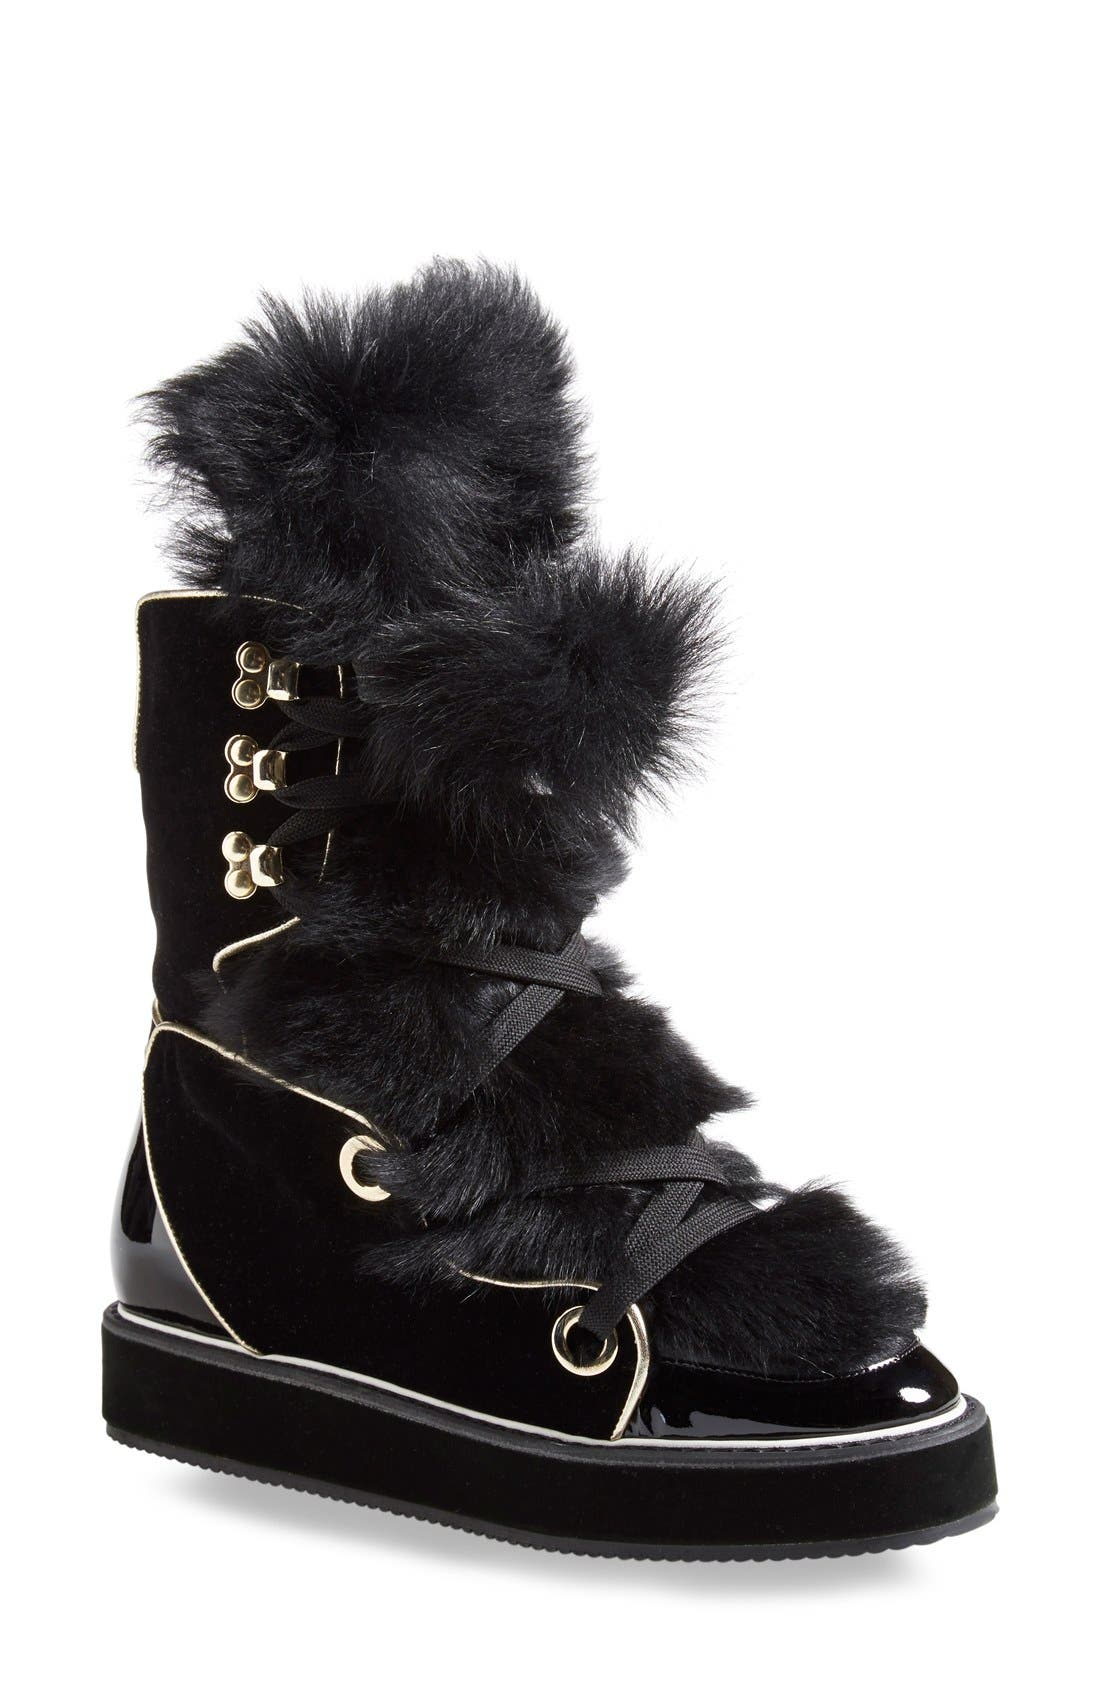 Main Image - Nicholas Kirkwood 'Polly Neige' Snow Boot (Women)